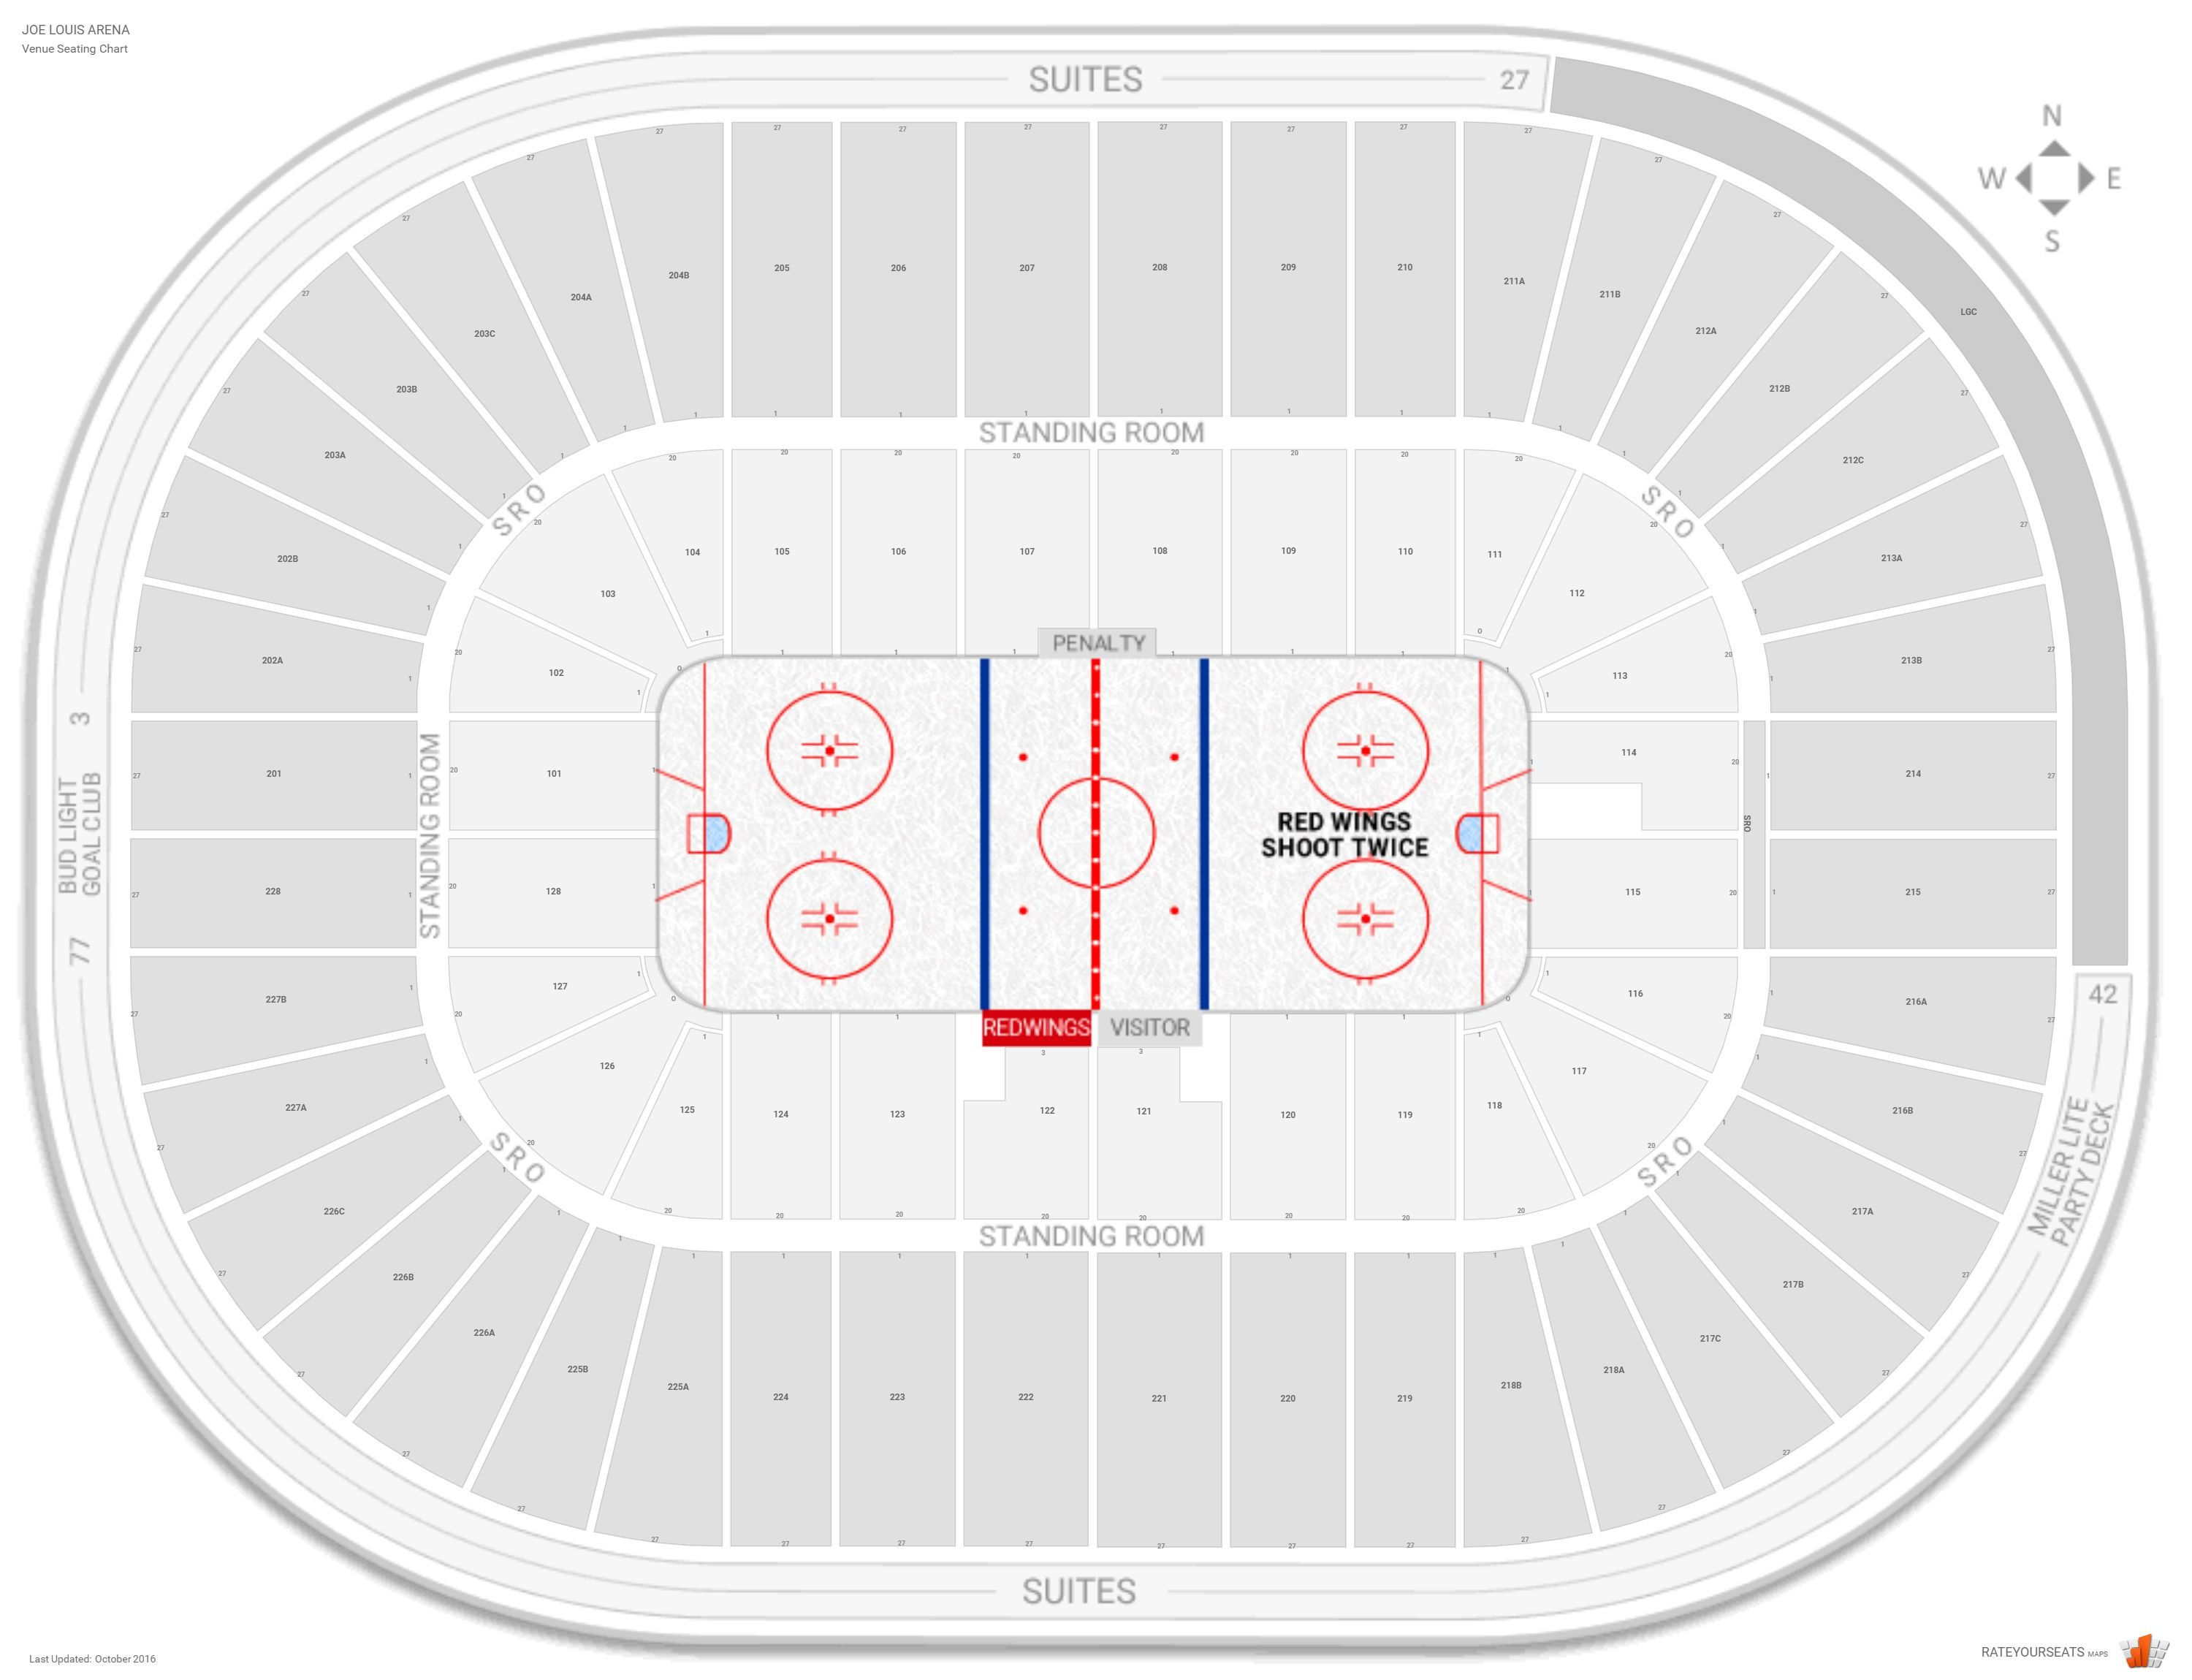 Joe louis arena seating guide rateyourseats com